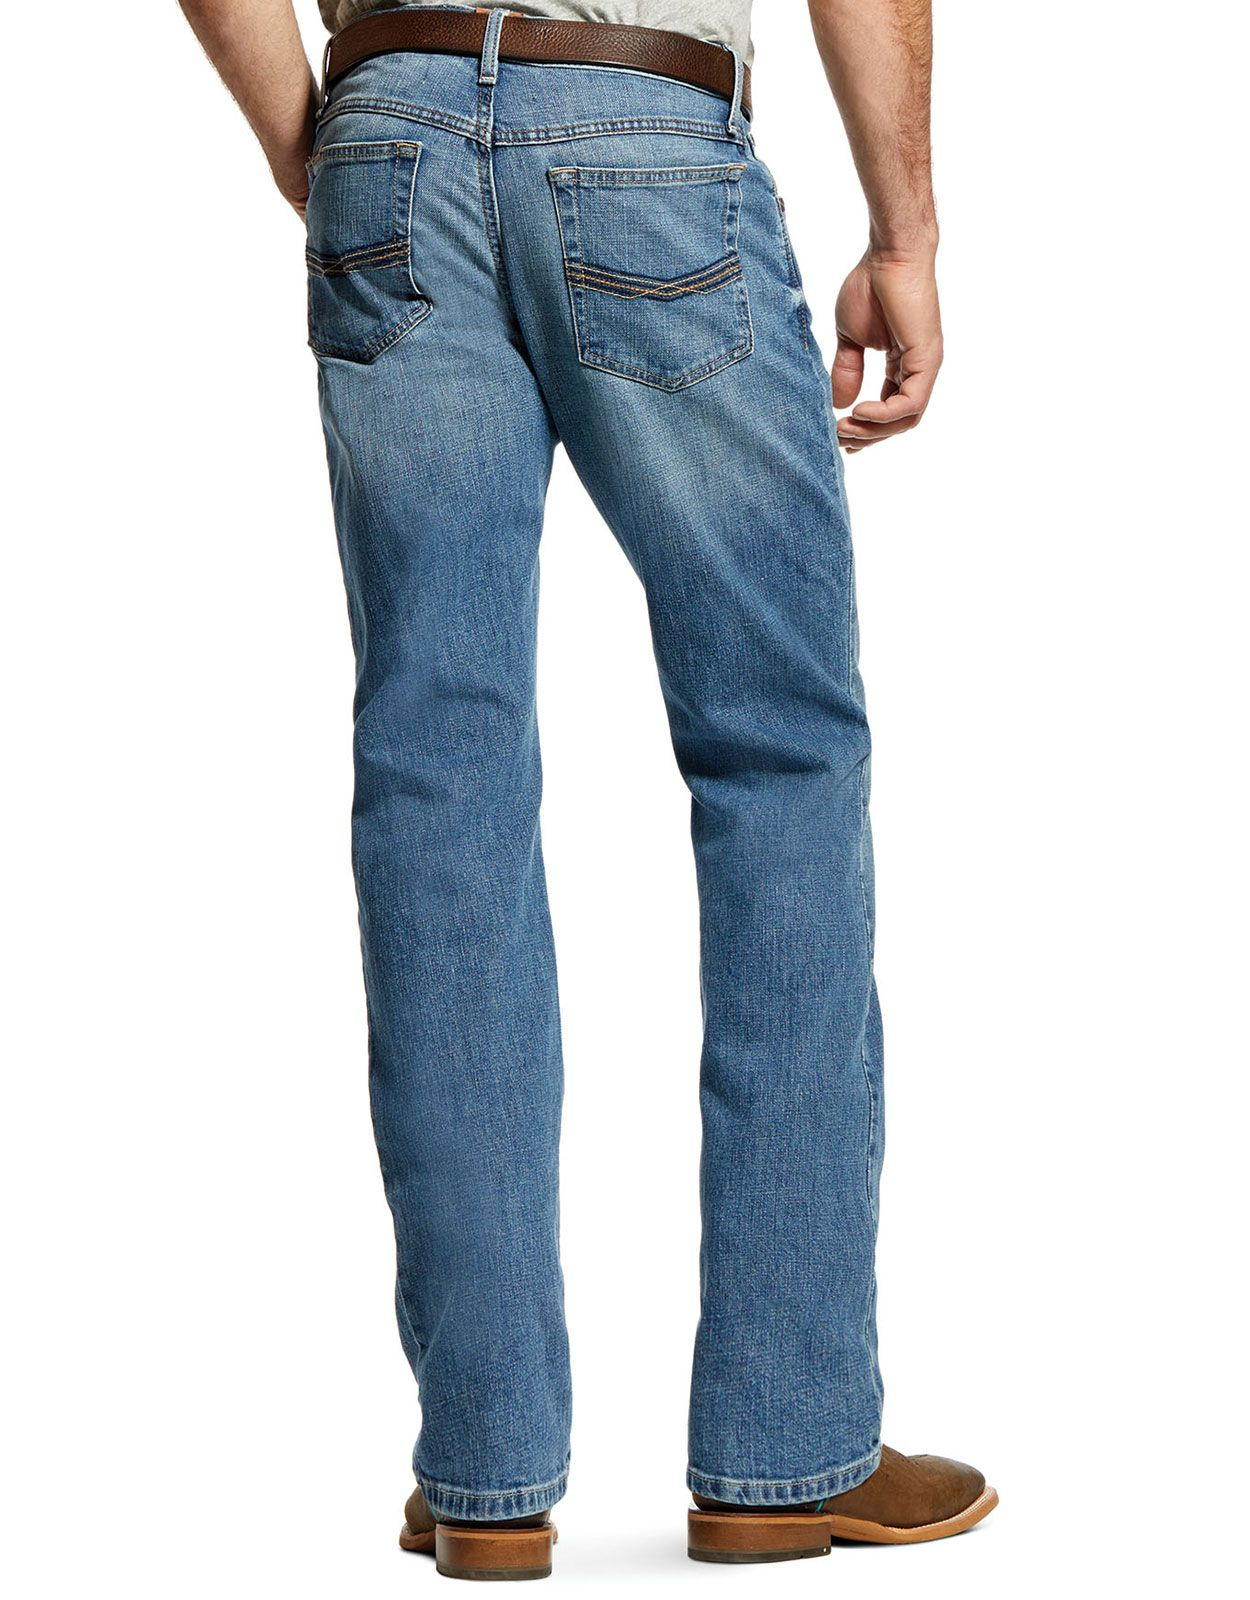 Ariat Men's M4 Legacy Stretch Low Rise Relaxed Fit Stackable Straight Leg Jeans - Sawyer (Closeout)